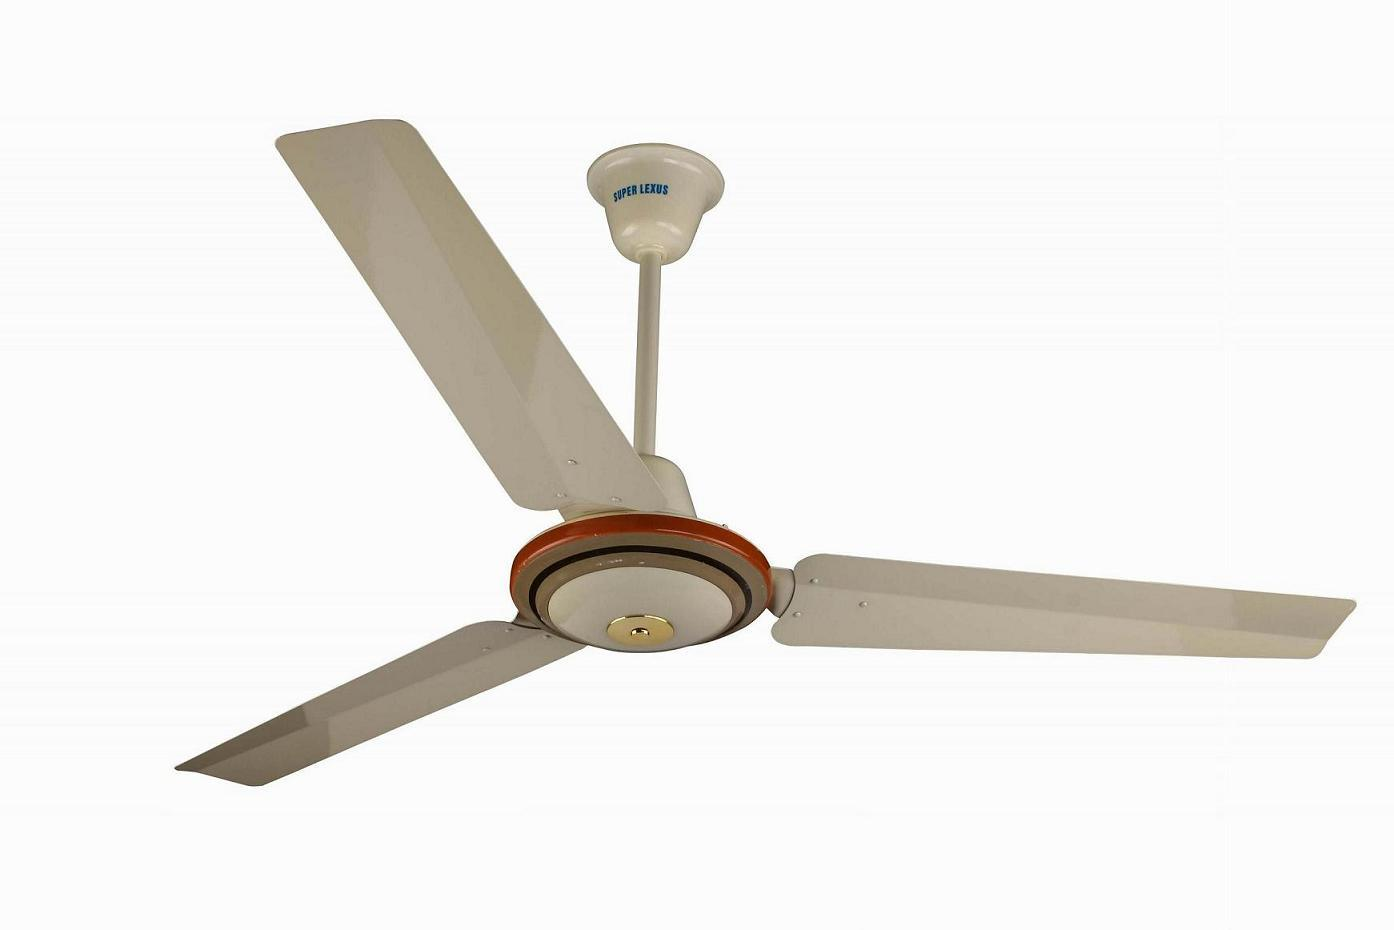 Ceiling Fan Troubleshooting Electrical Parts : Ceiling fan electrical parts